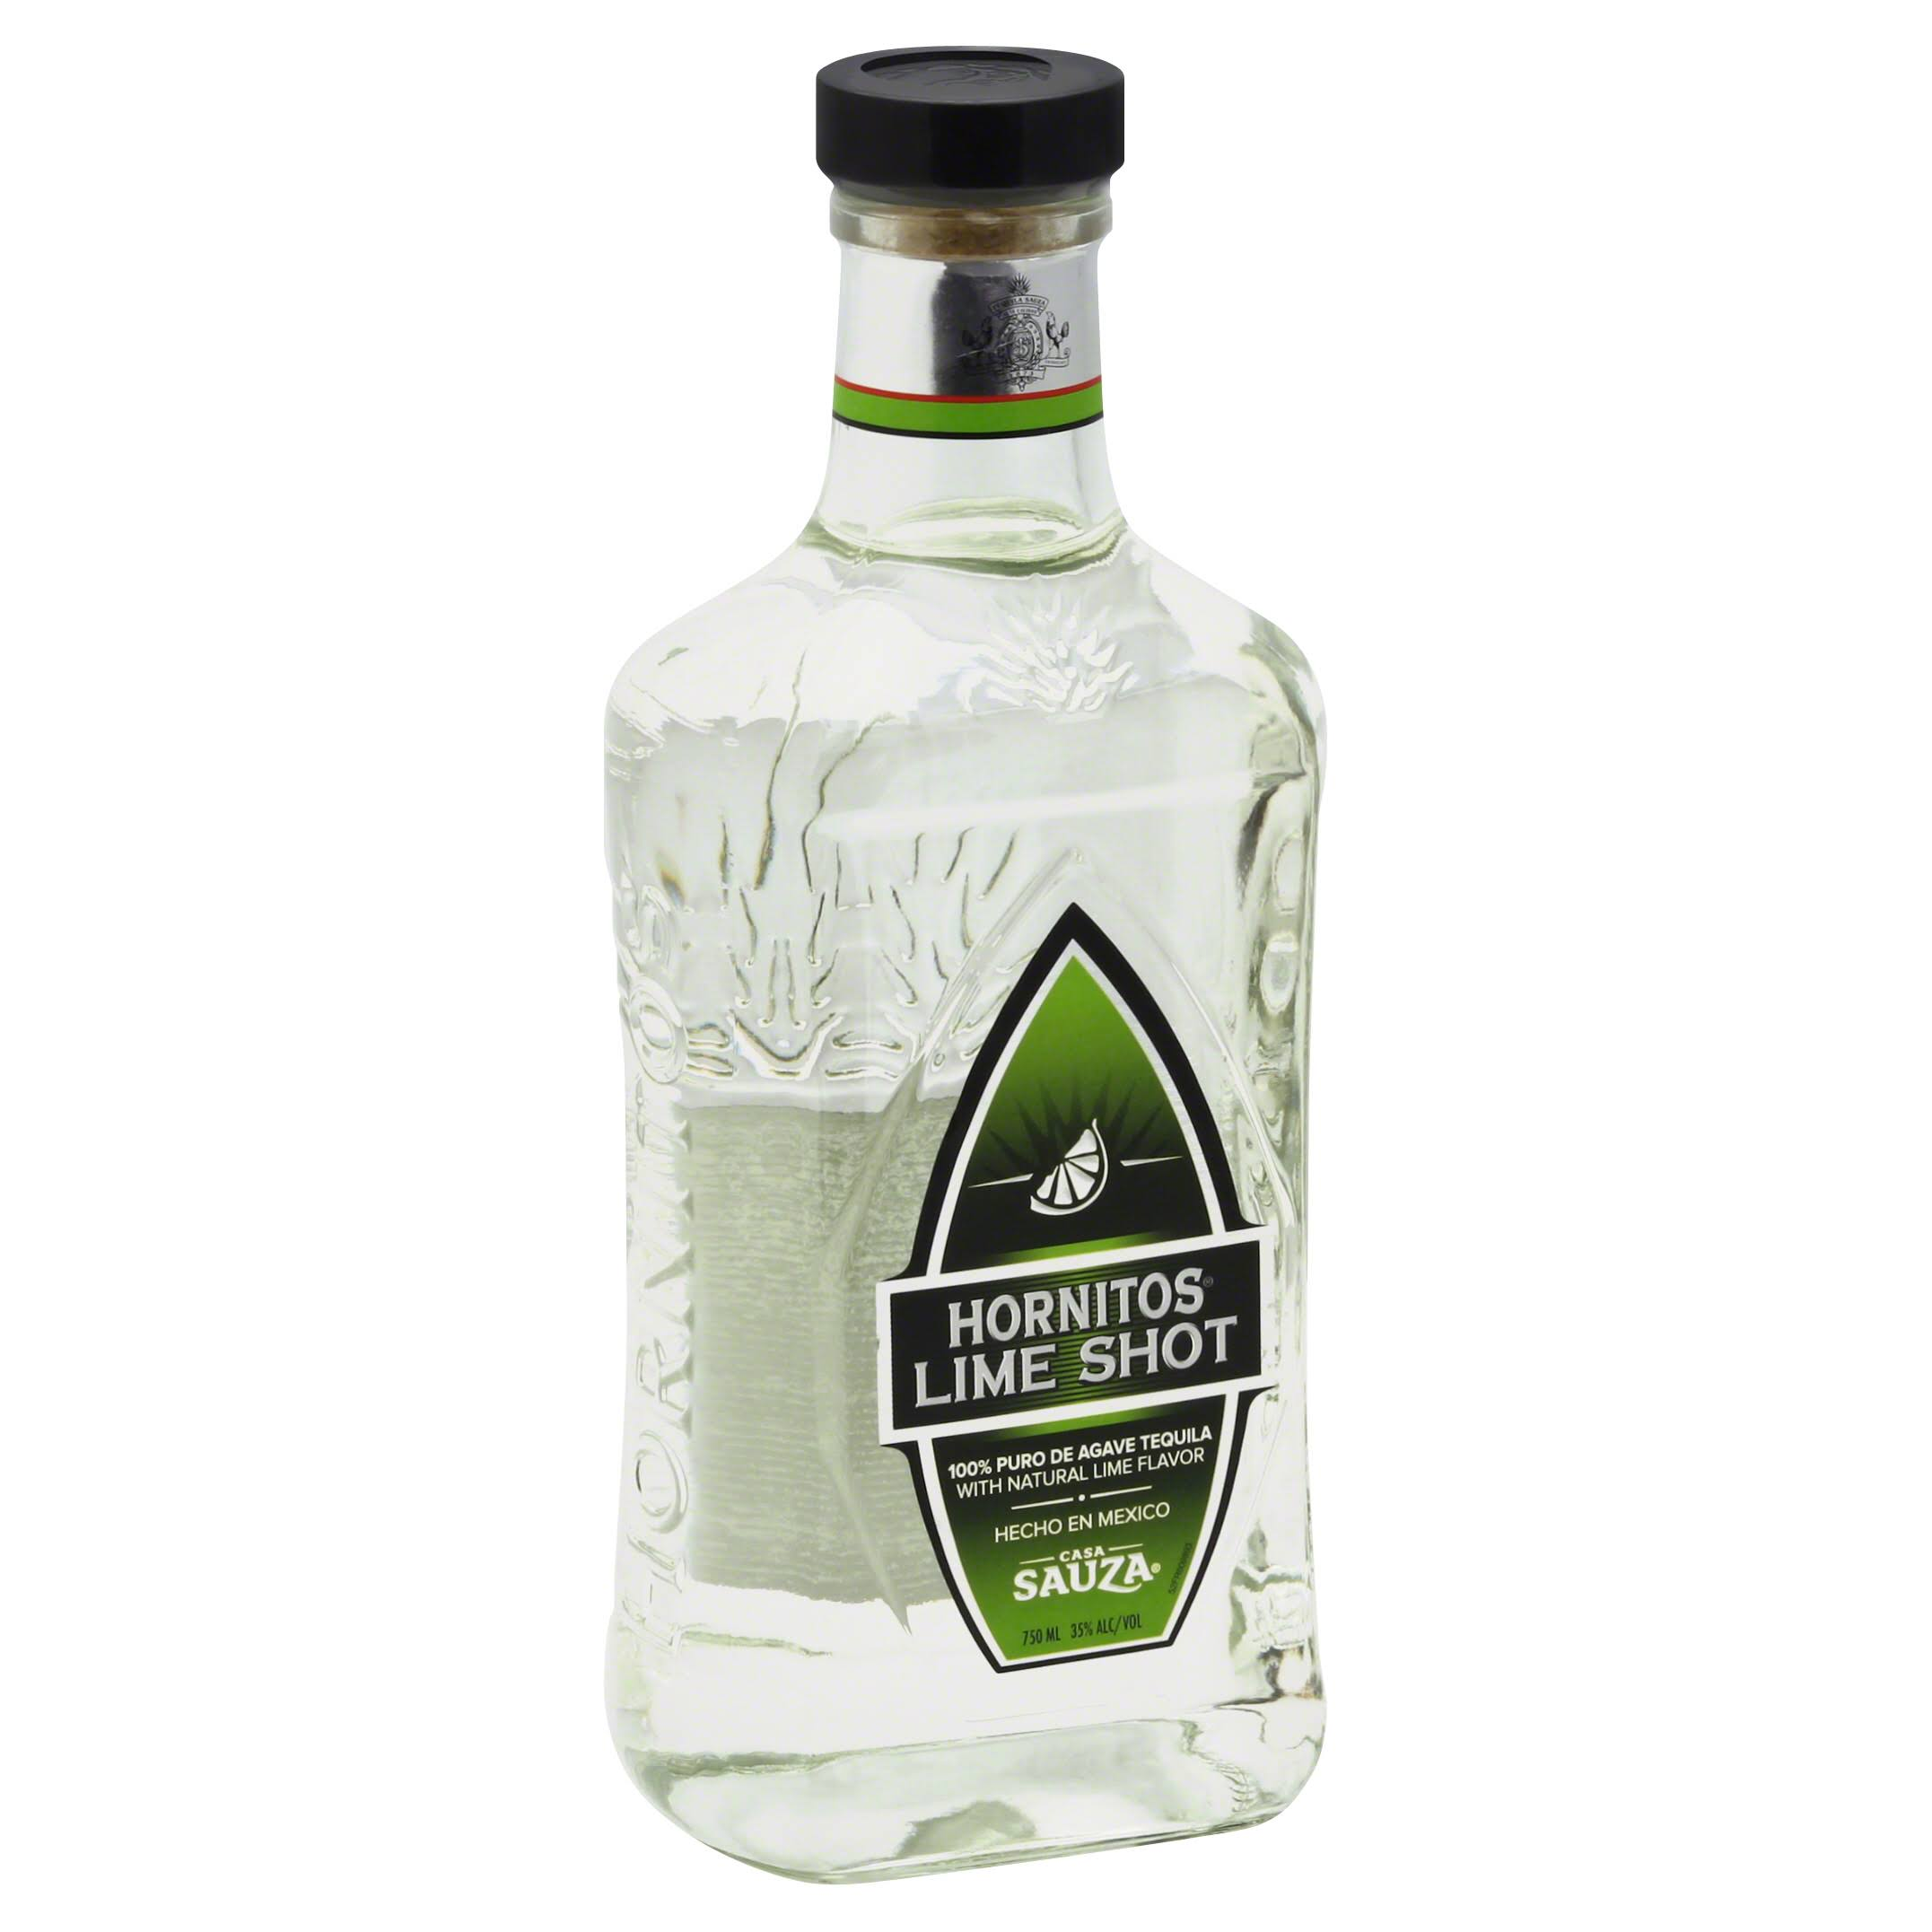 Hornitos Lime Shot Tequila - 750ml